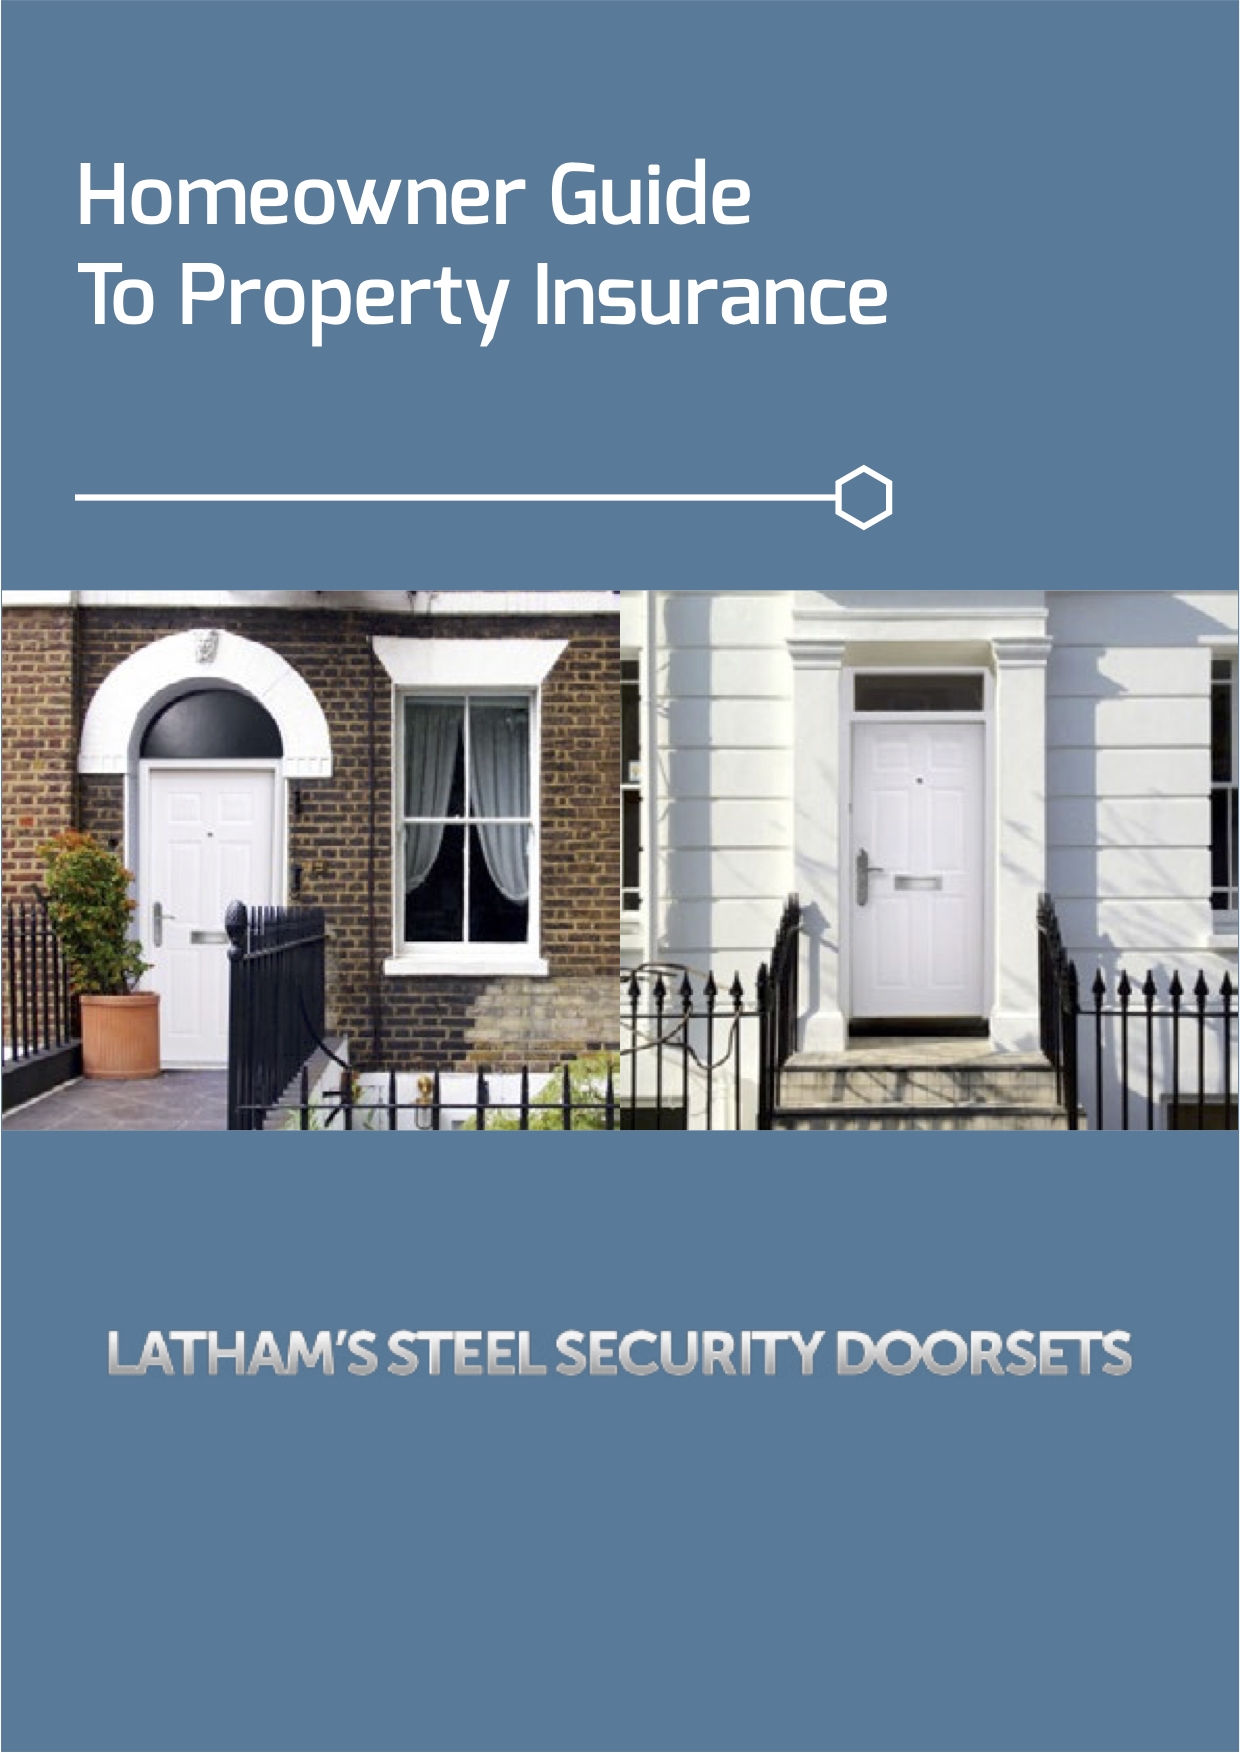 Homeowner guide to property insurance screenshot showing front doors